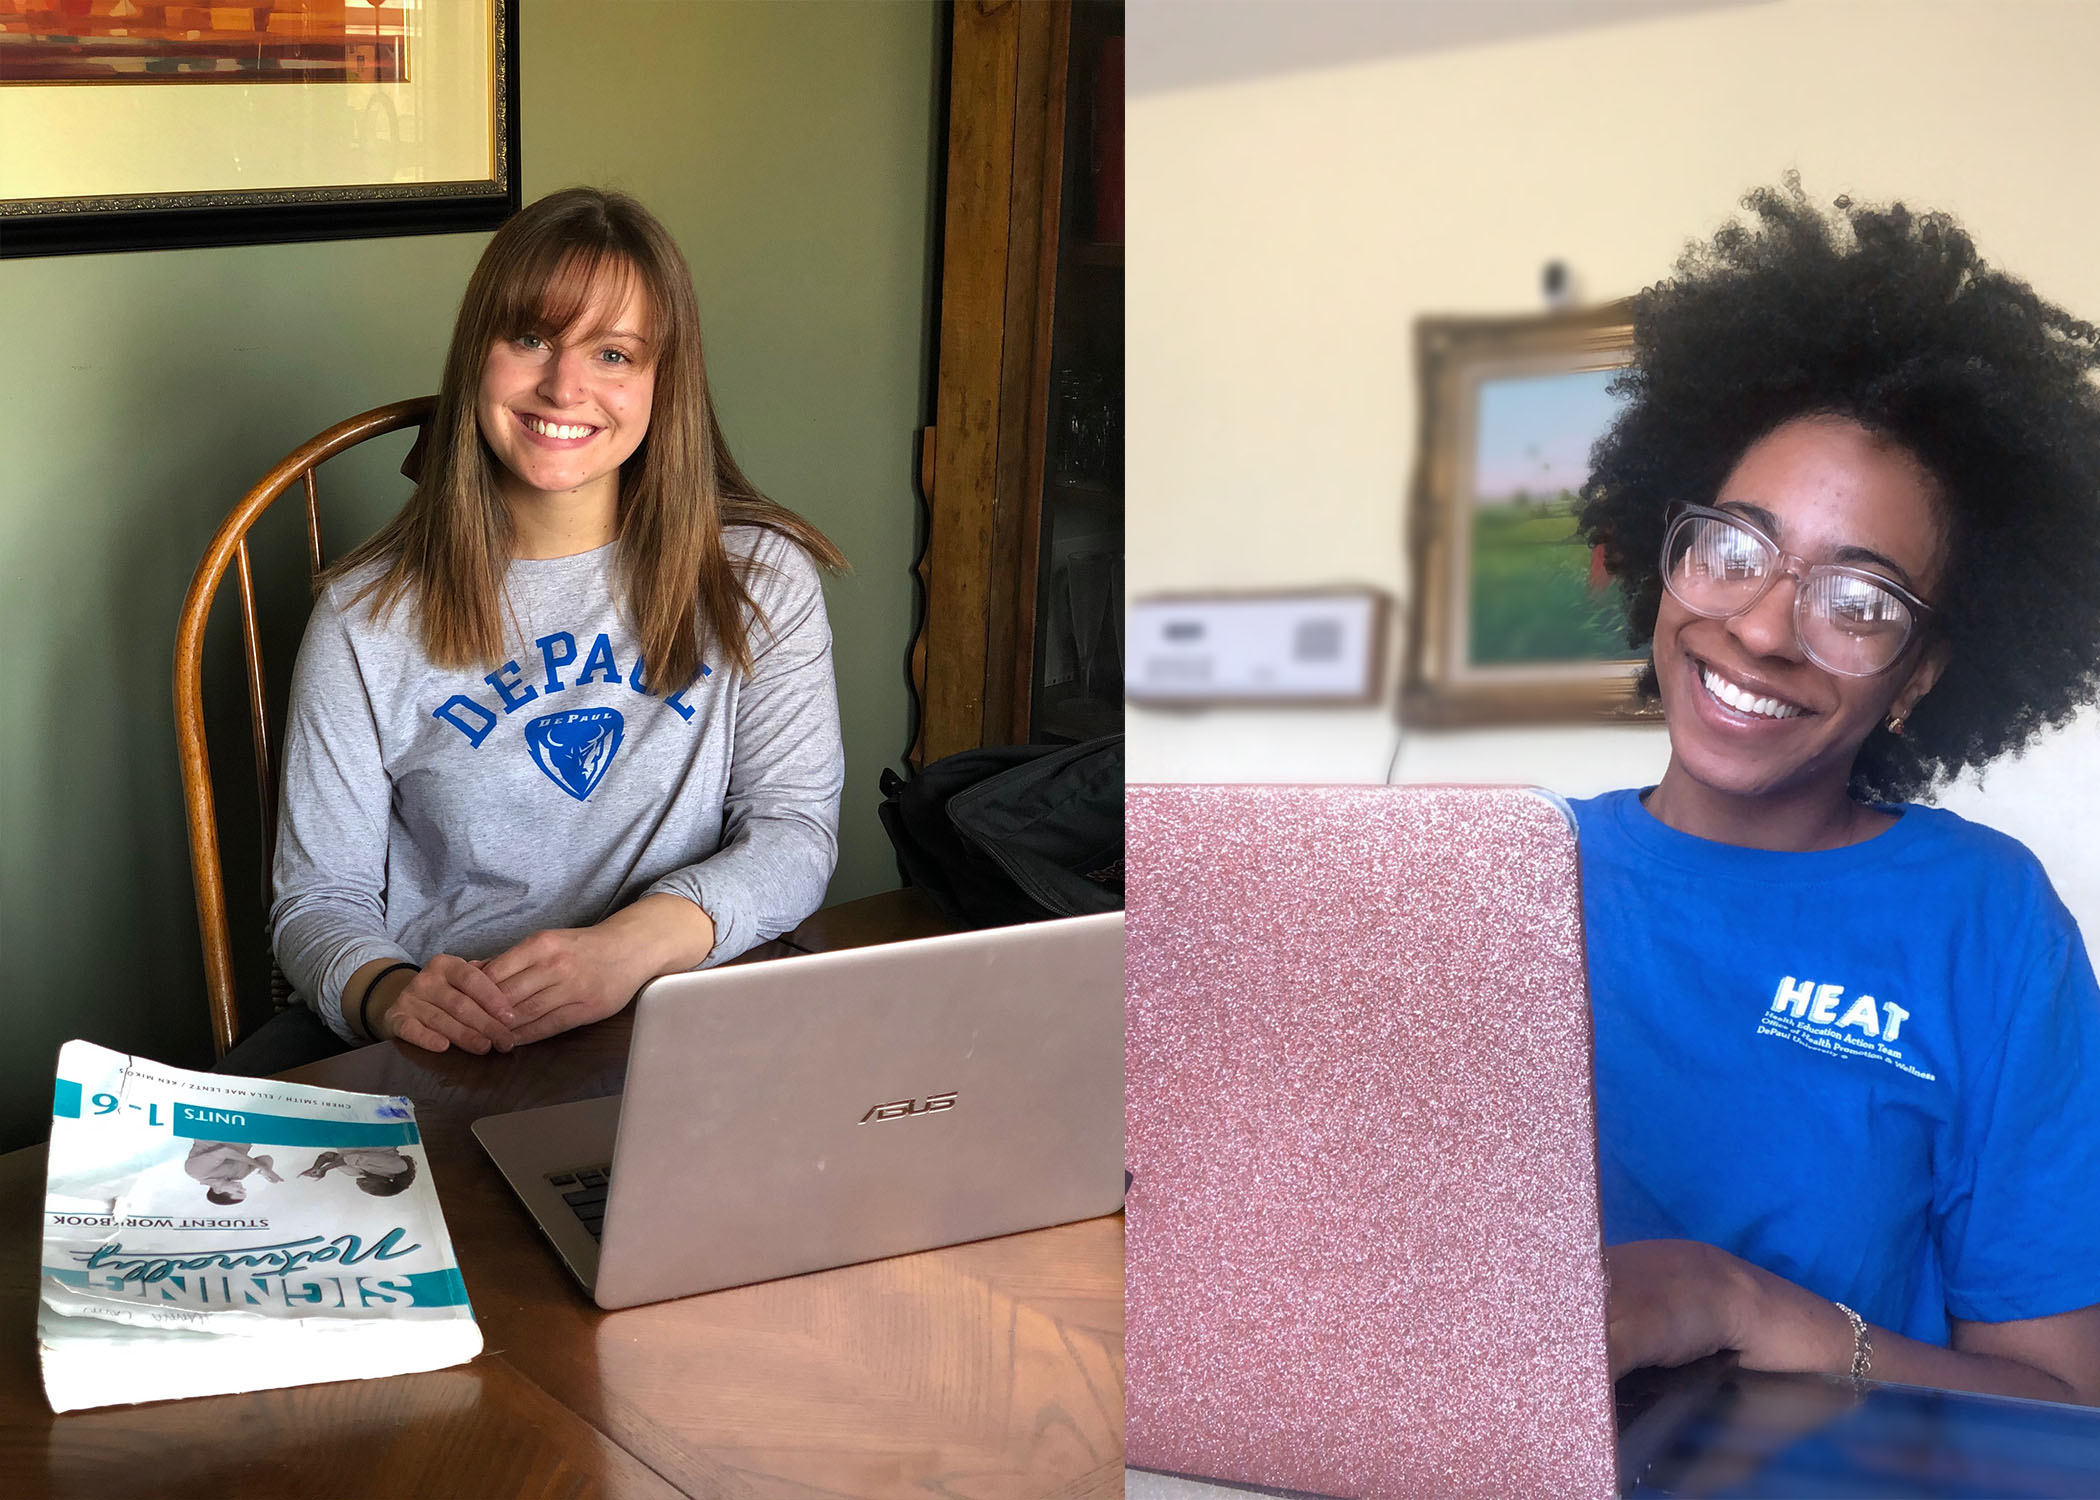 Students Hanna Lavin (left) and Christine Augustin discuss their experience working and learning from home amid COVID-19. (Images courtesy of Hanna Lavin and Christine Augustin)